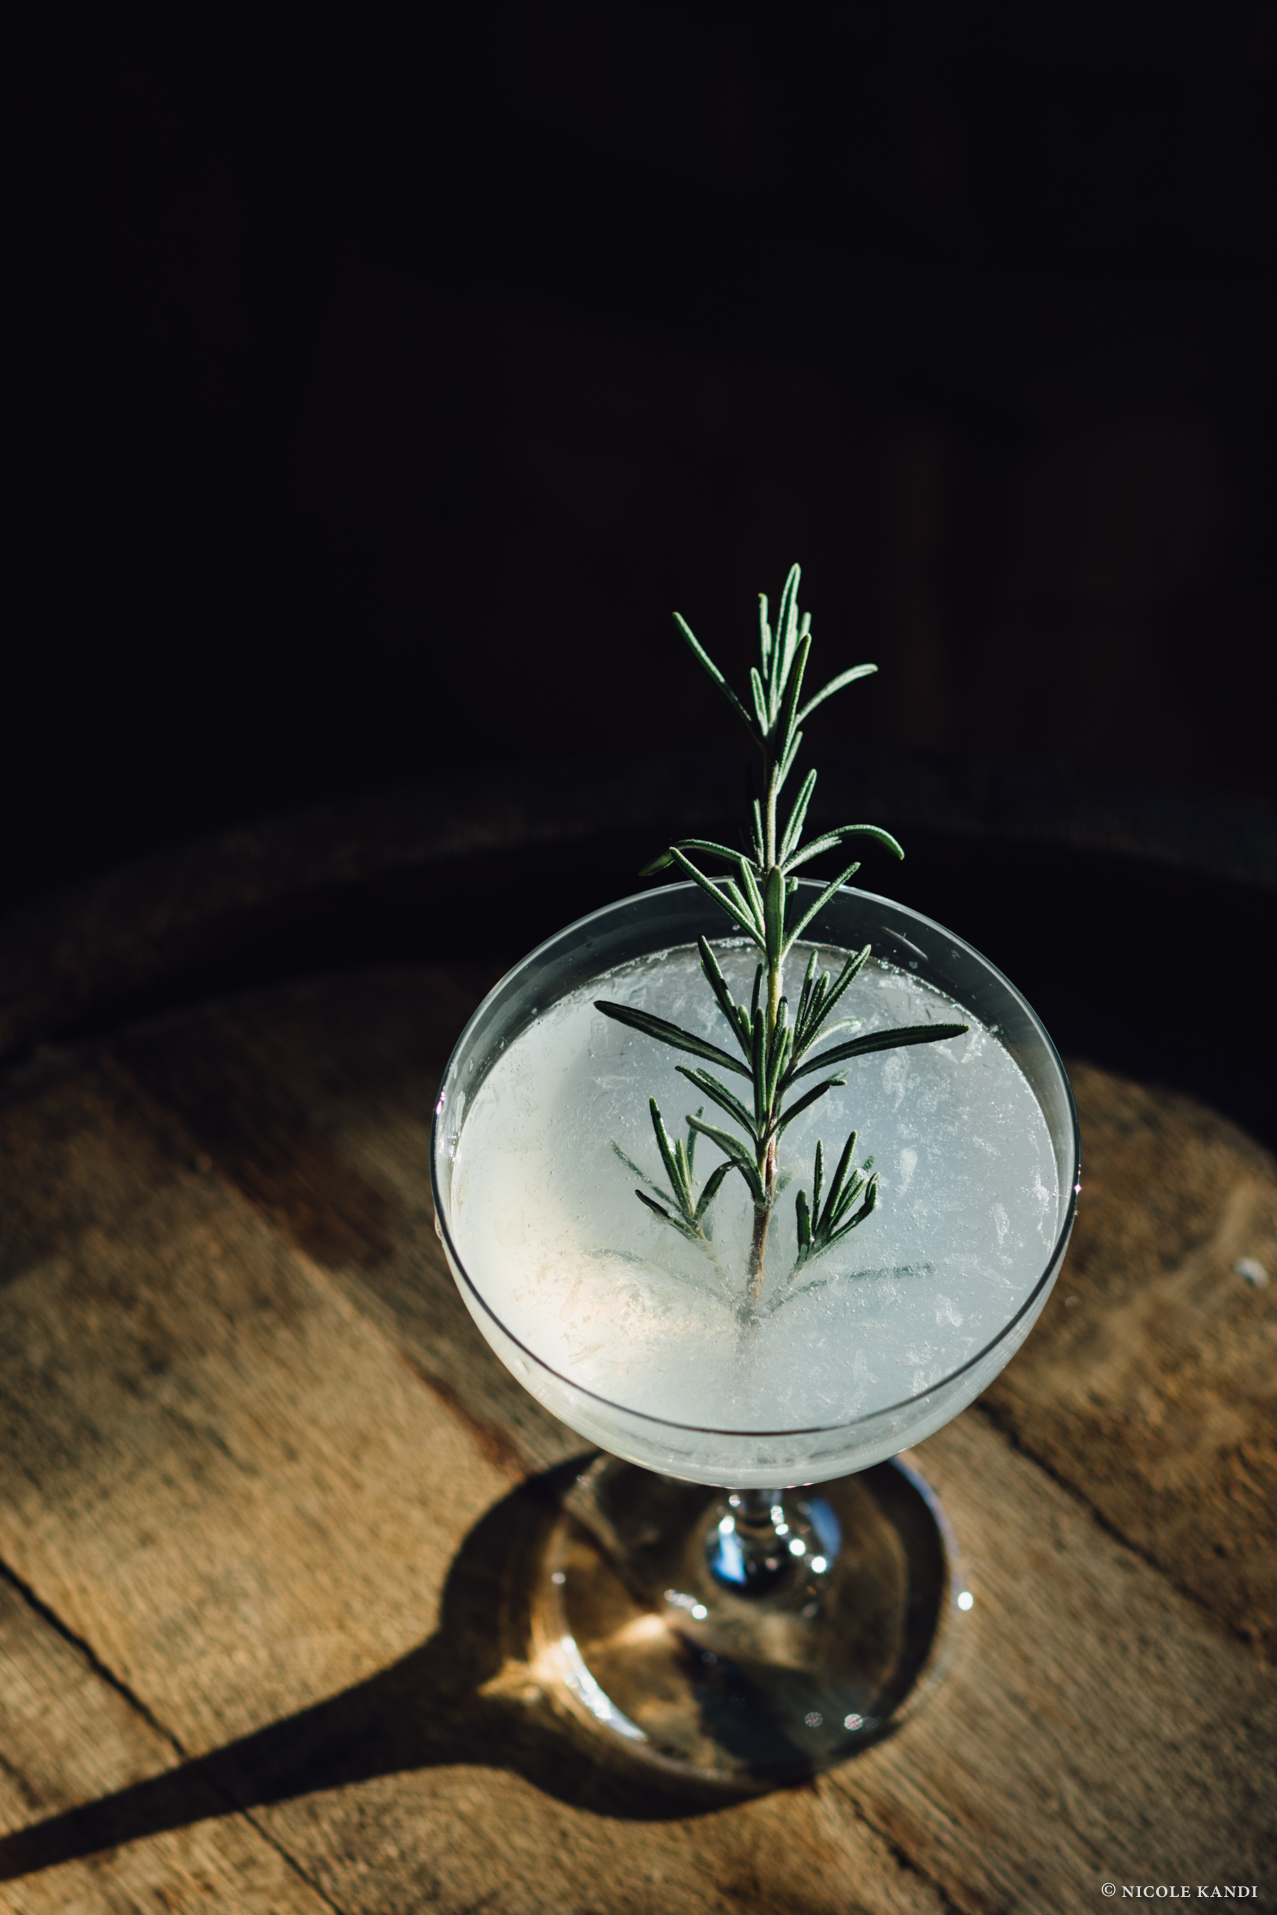 rv_gimlet_rosemary.jpg